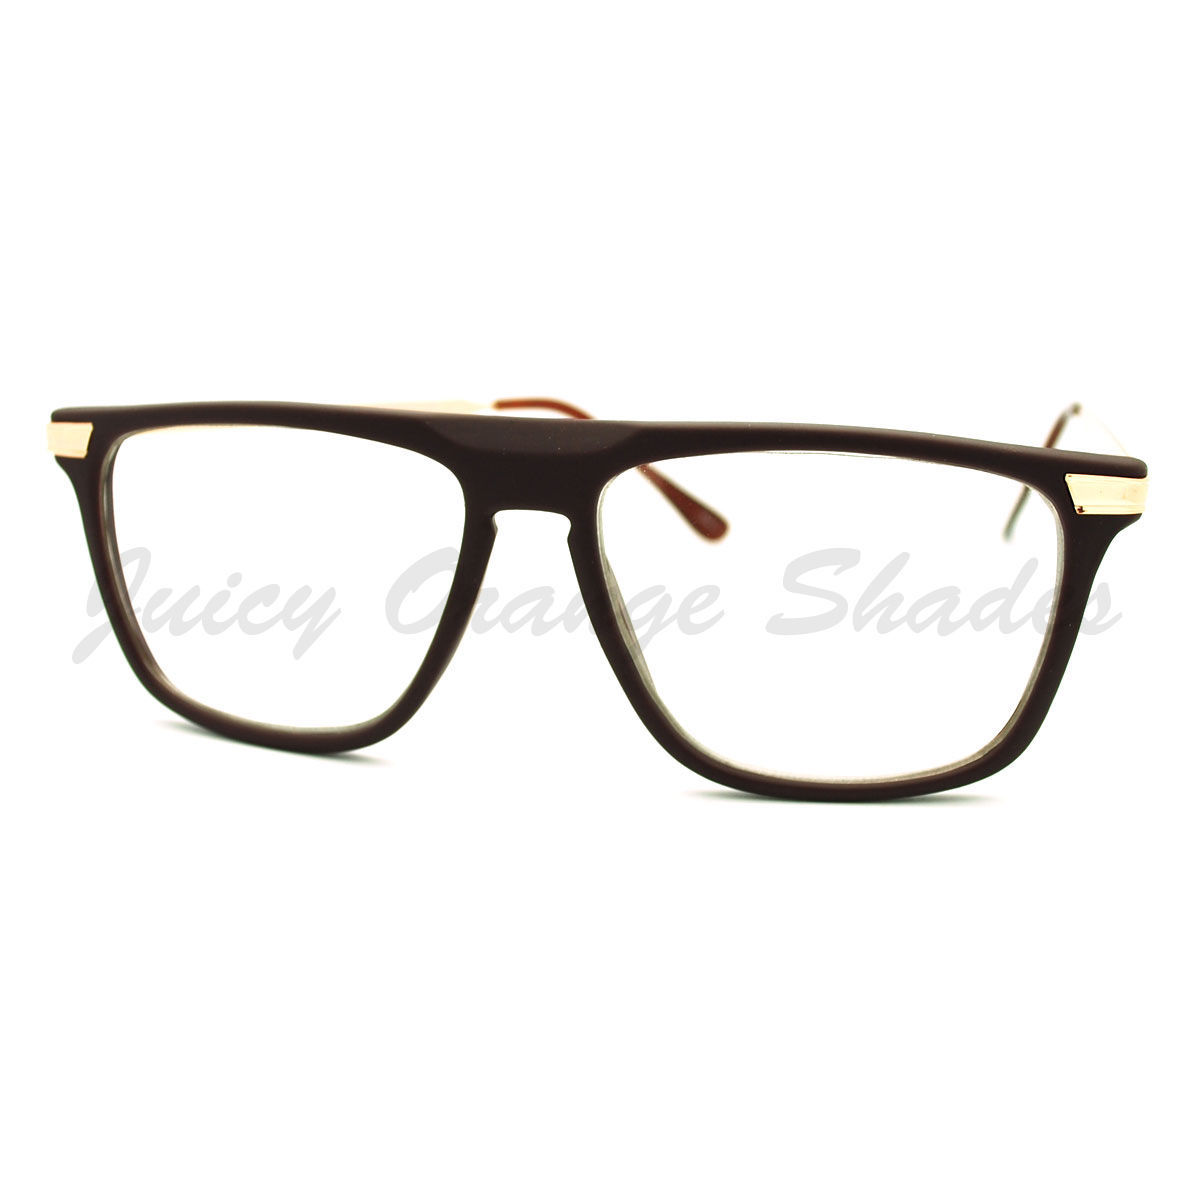 Clear Lens Glasses Flat Top Fashion Eyeglasses Thin Square Frame